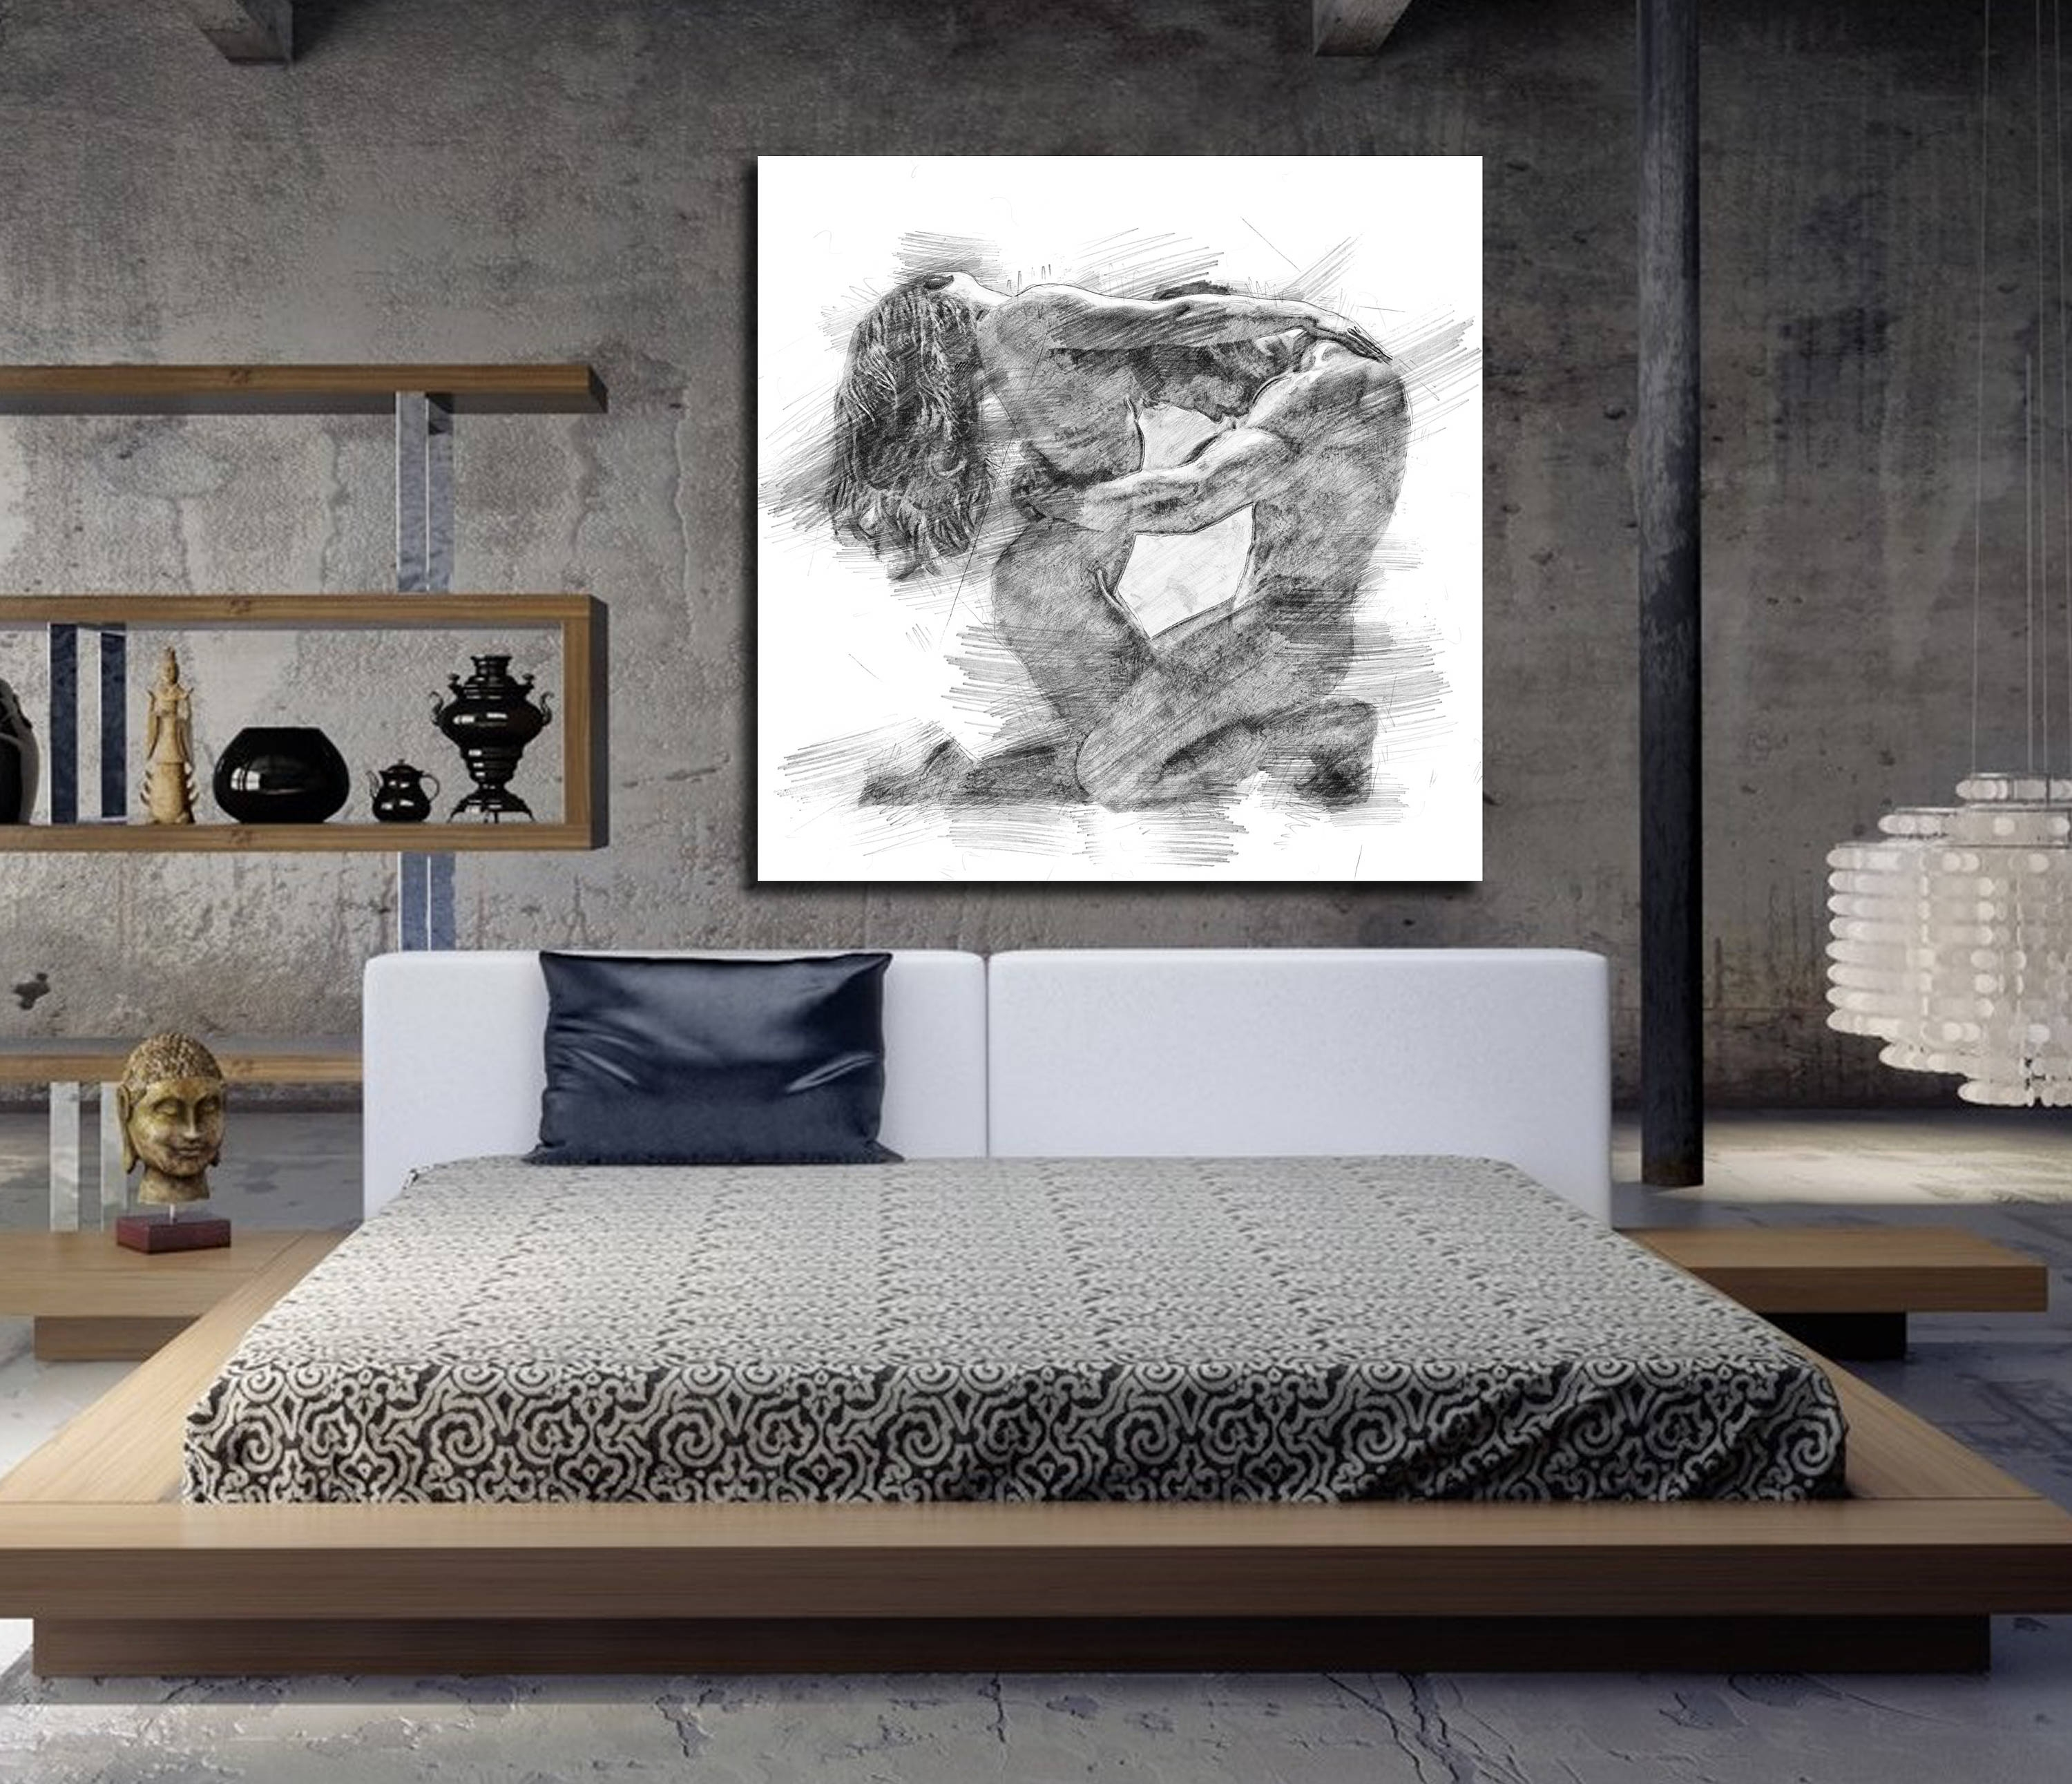 Canvas Art His & Hers Bedroom Wall Art, Abstract Art Print, Pencil Within Most Current Abstract Wall Art For Bedroom (View 5 of 21)